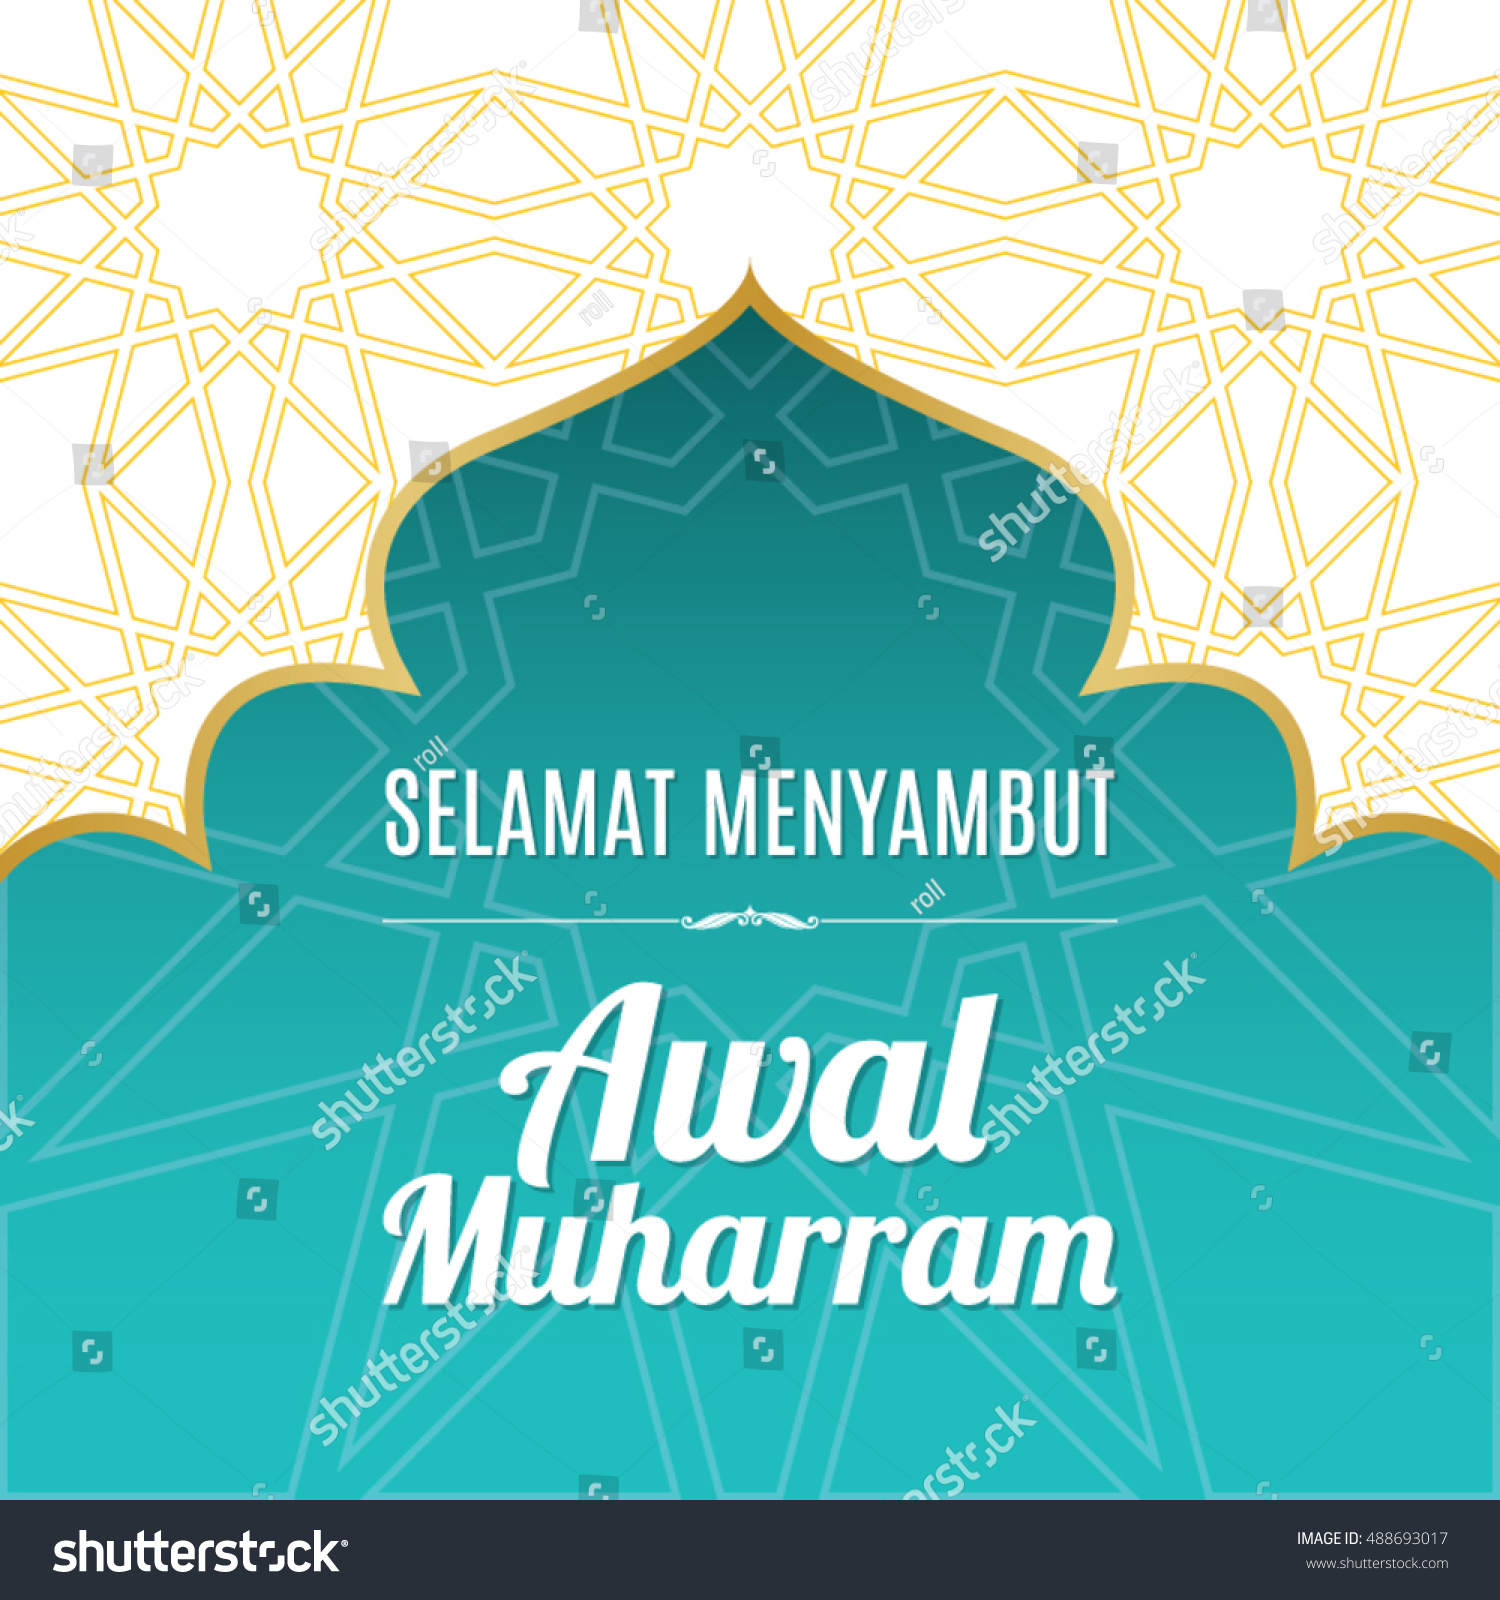 Selamat Menyambut Awal Muharram Greeting Which Stock Vector Royalty